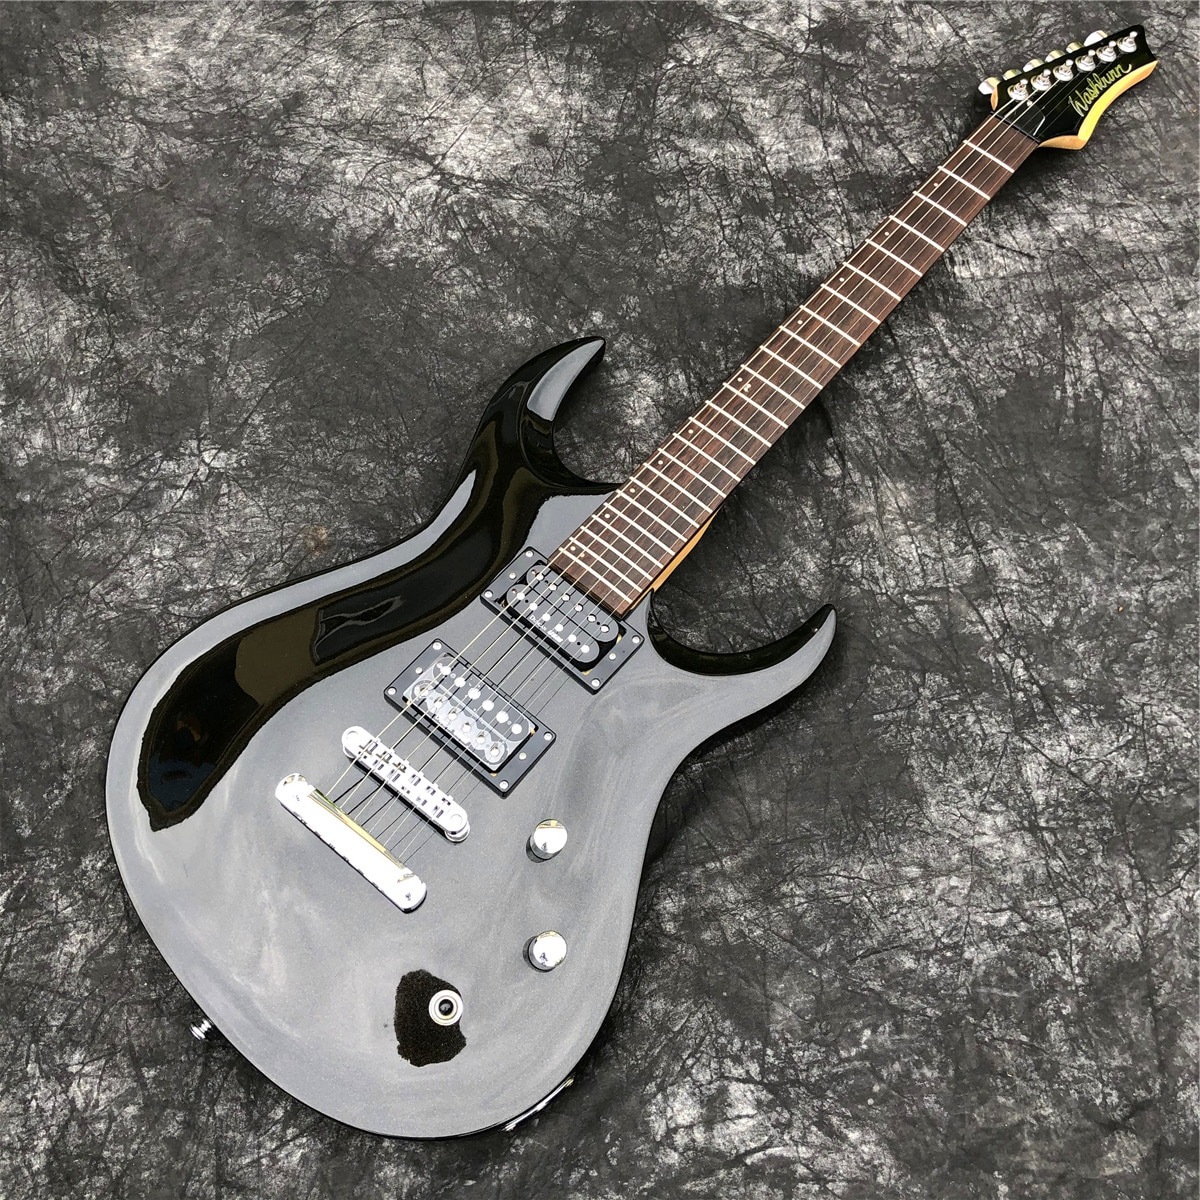 Top Qulality Glossy Black 6 String Solid Basswood Electric Guitar with Chrome Hardwares